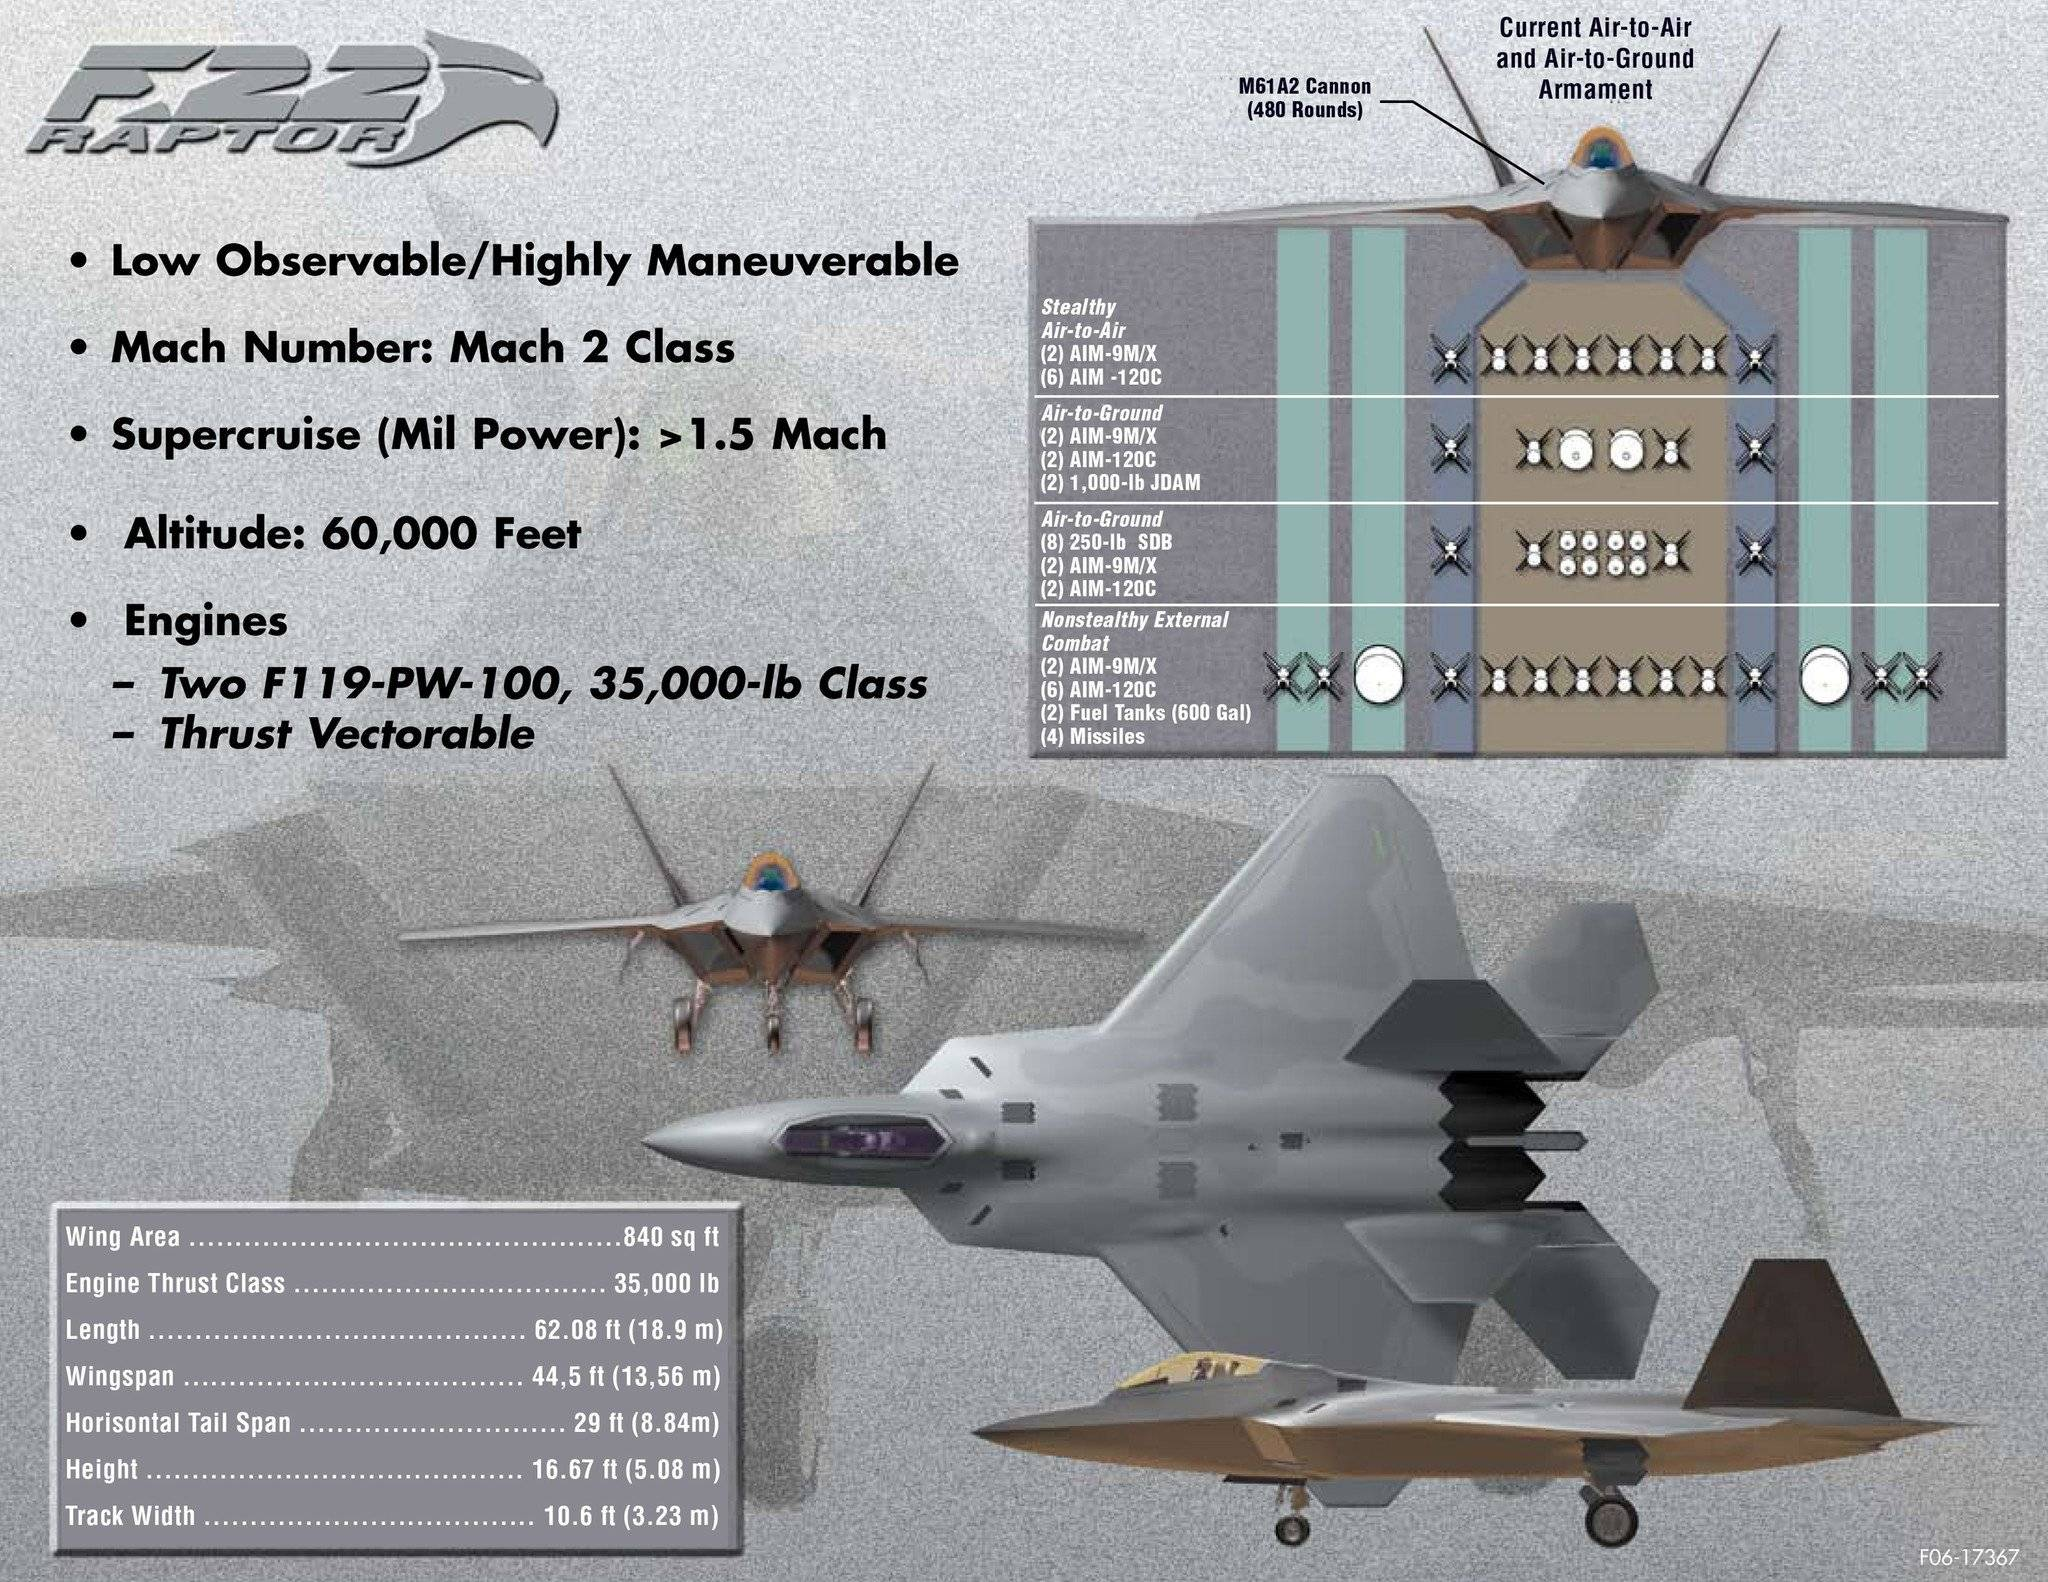 The Lockheed Martin/Boeing F-22 Raptor is a single-seat, twin-engine  fifth-generation super maneuverable fighter aircraft that uses stealth  technology.